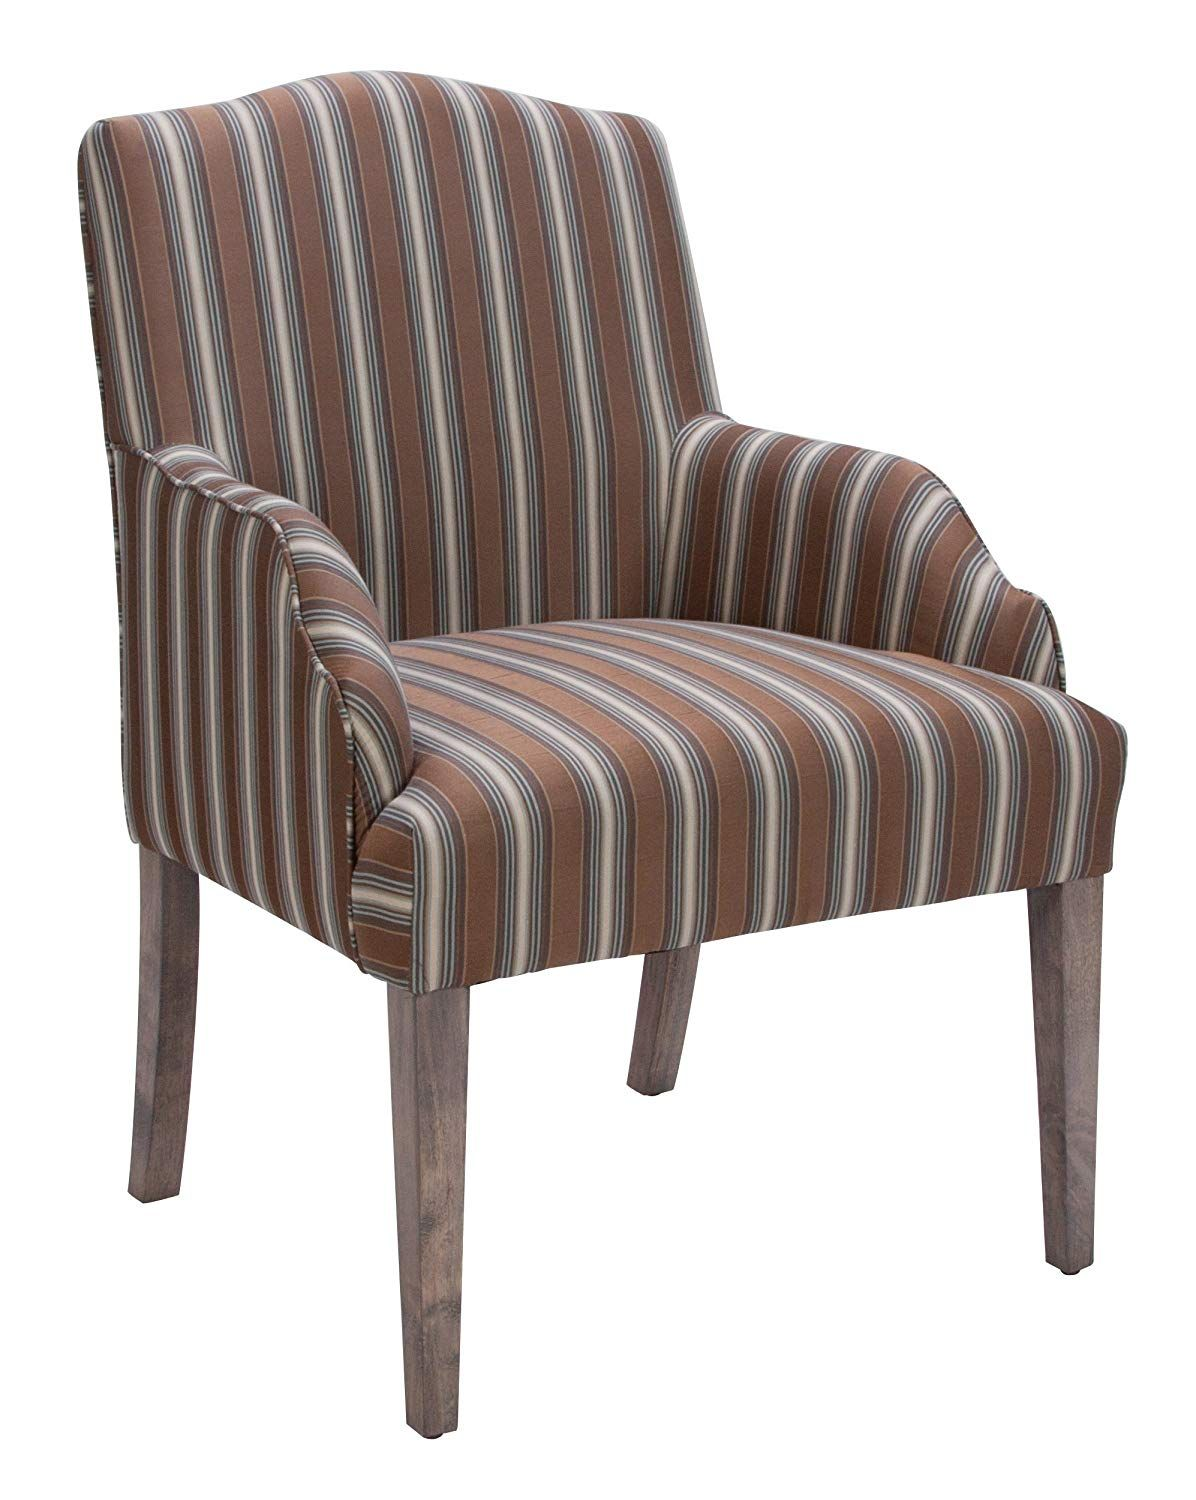 Homelegance 2516A Accent/Arm Chair (Set of 2), Stripe